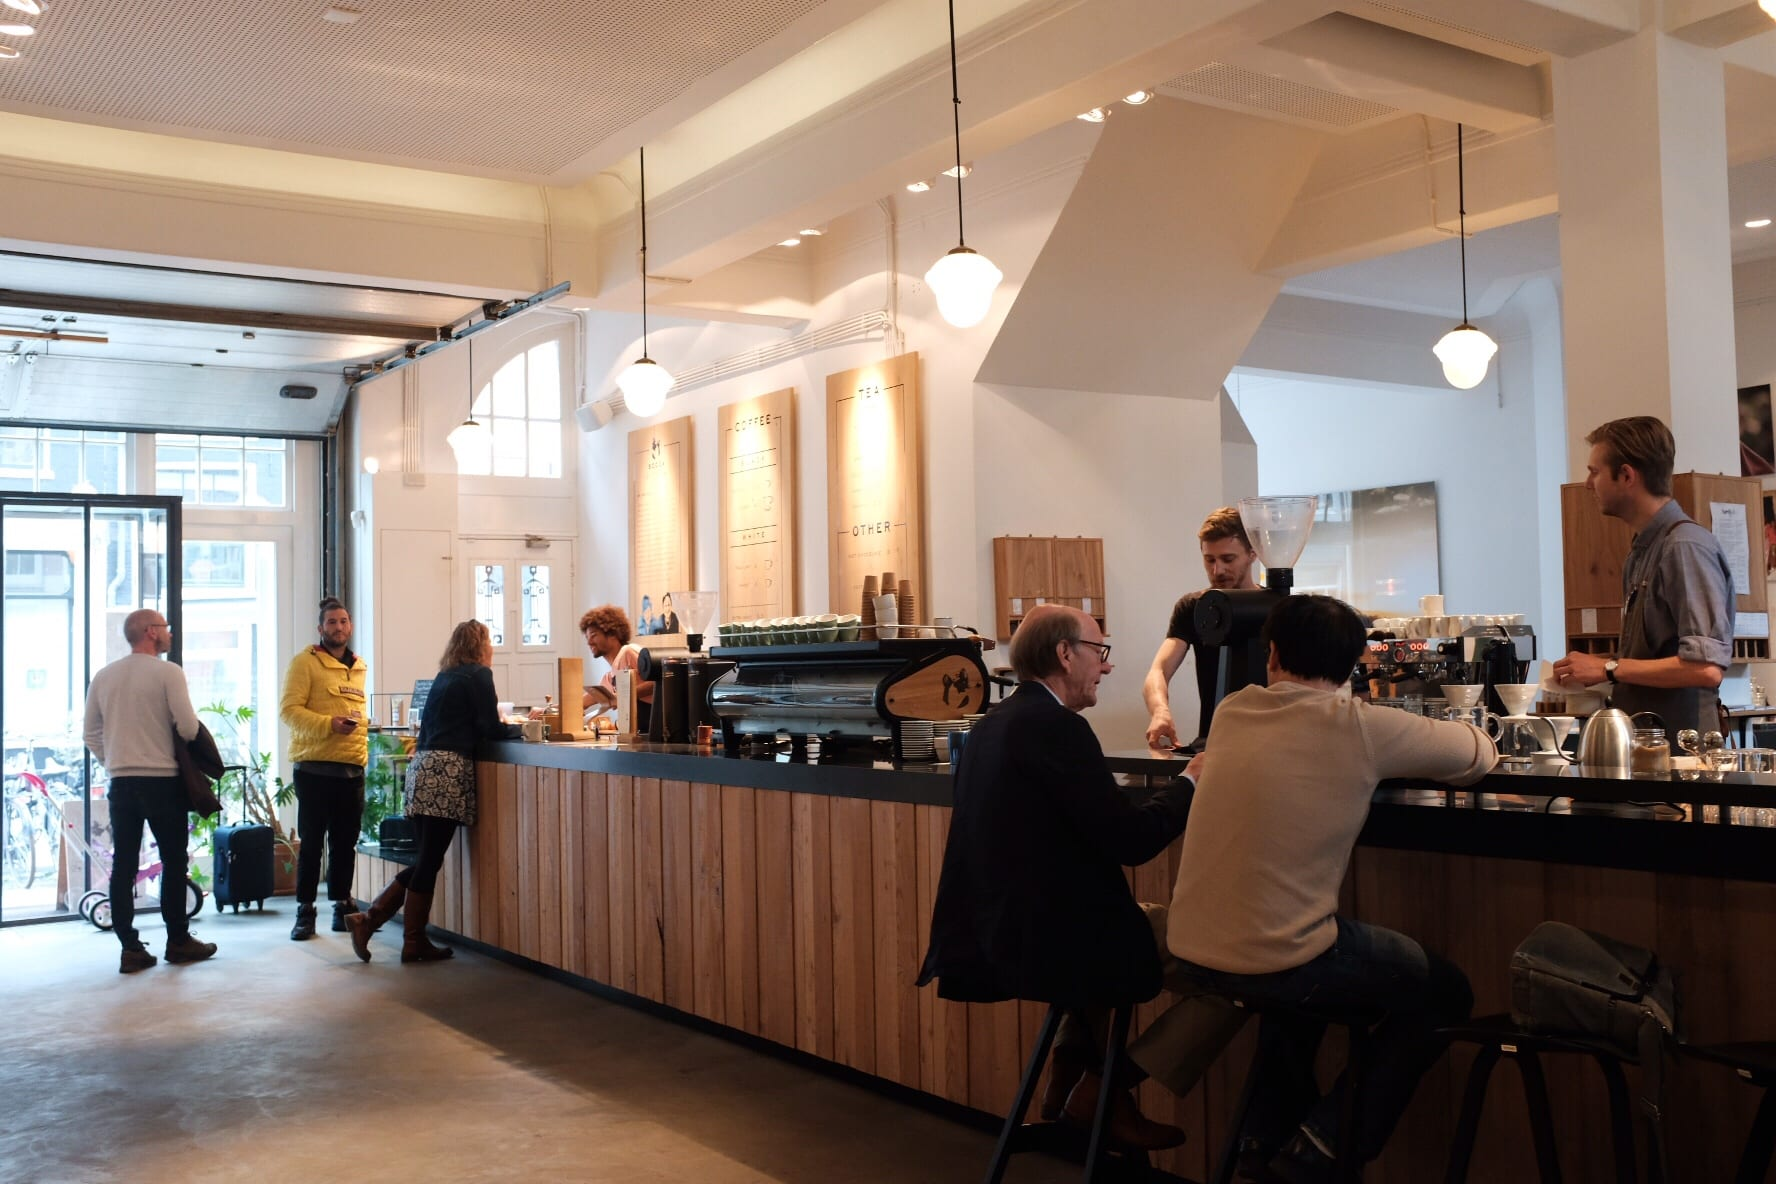 Coffee shop reviews the coffee compass for most of its history bocca has been focused on wholesale roasting but its amsterdam caf is something of a showroom for the company and is without a malvernweather Image collections